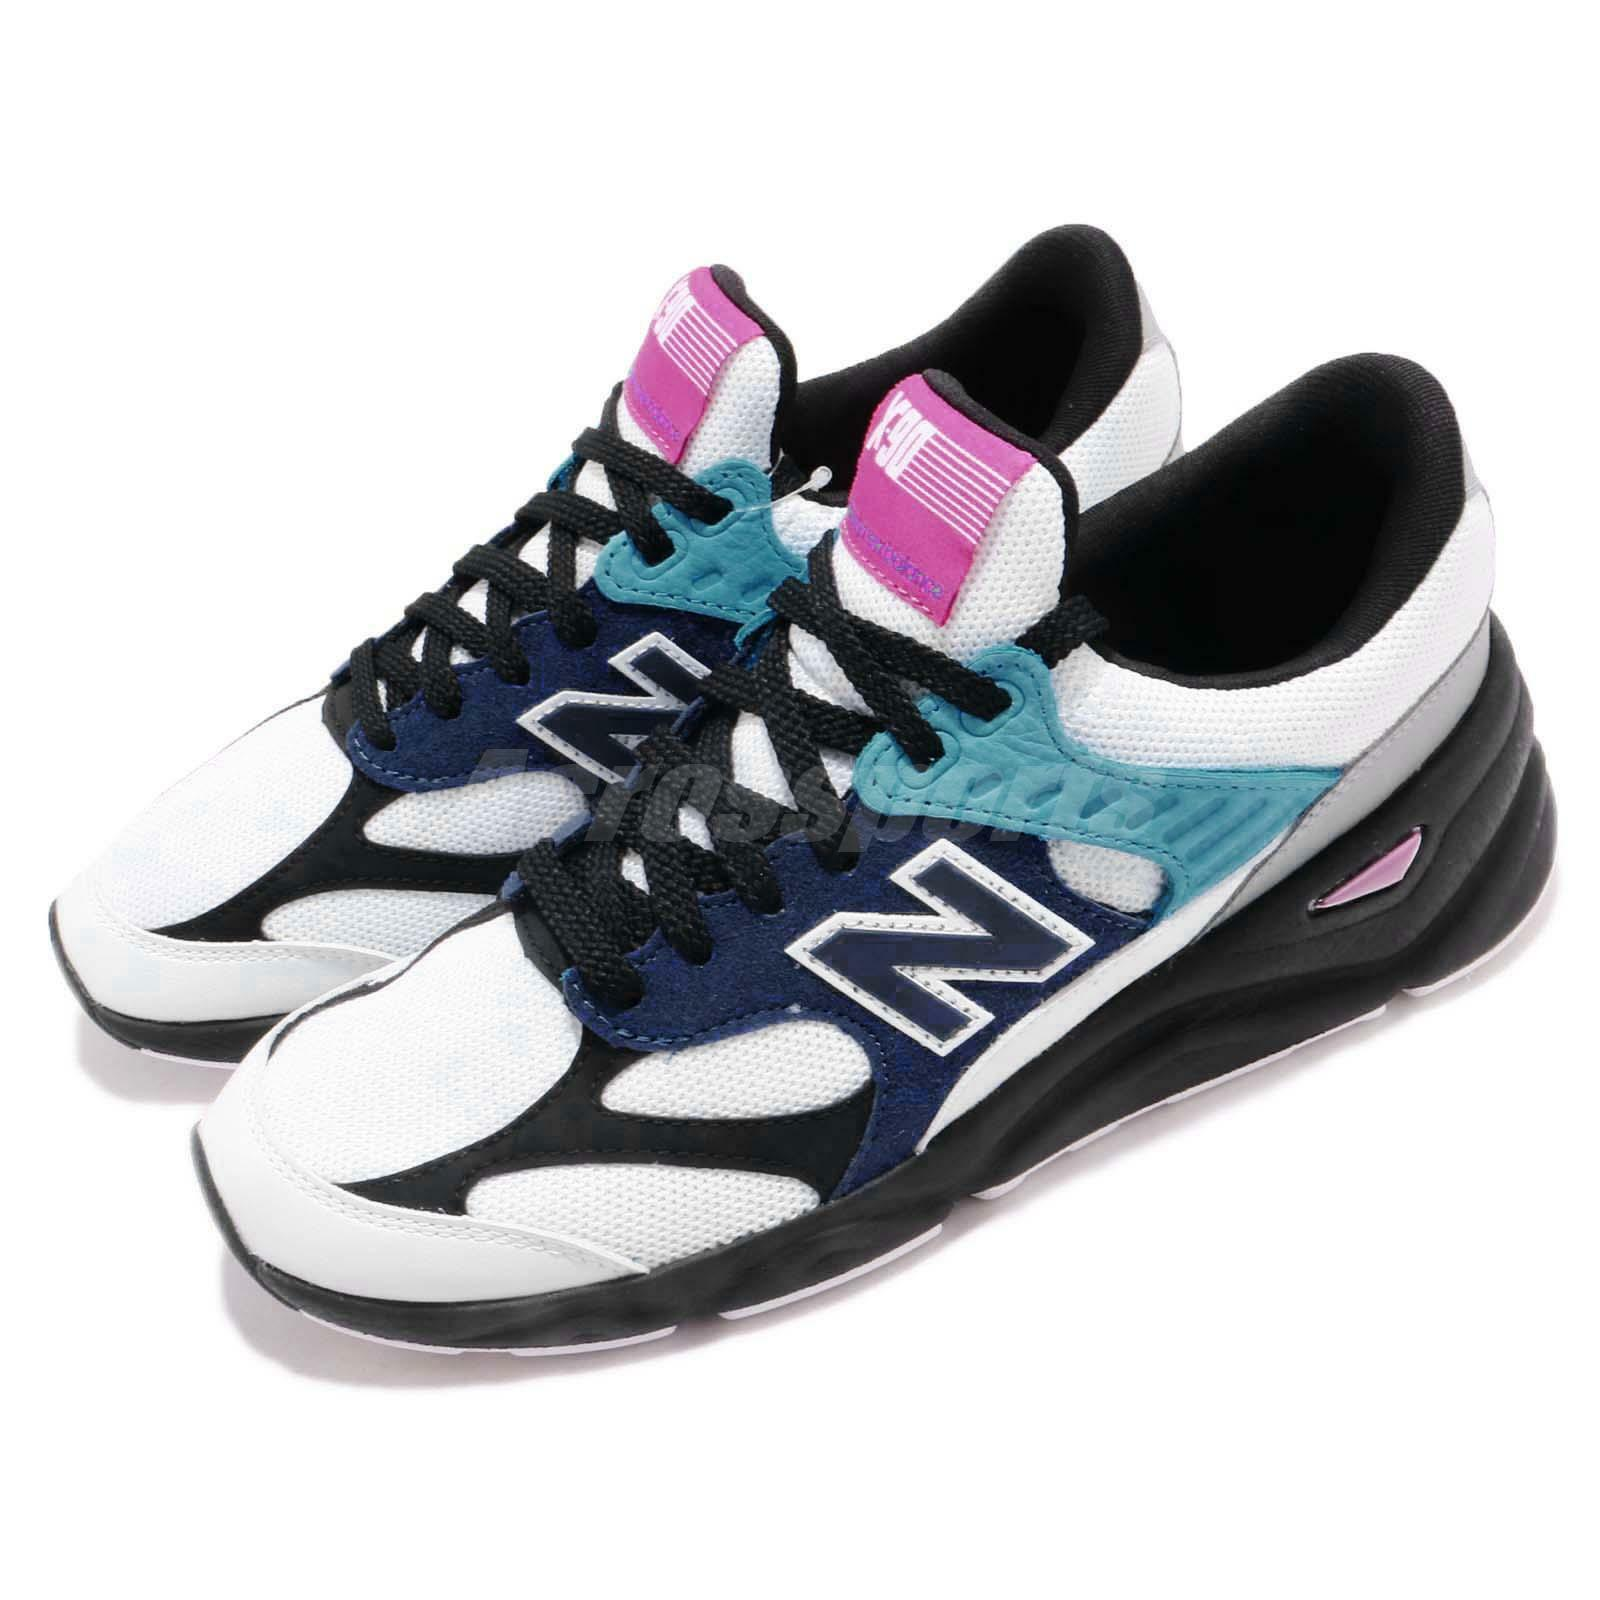 New Balance MSX90SNL D blancoo azul Navy Men Running zapatos zapatillas MSX90SNLD